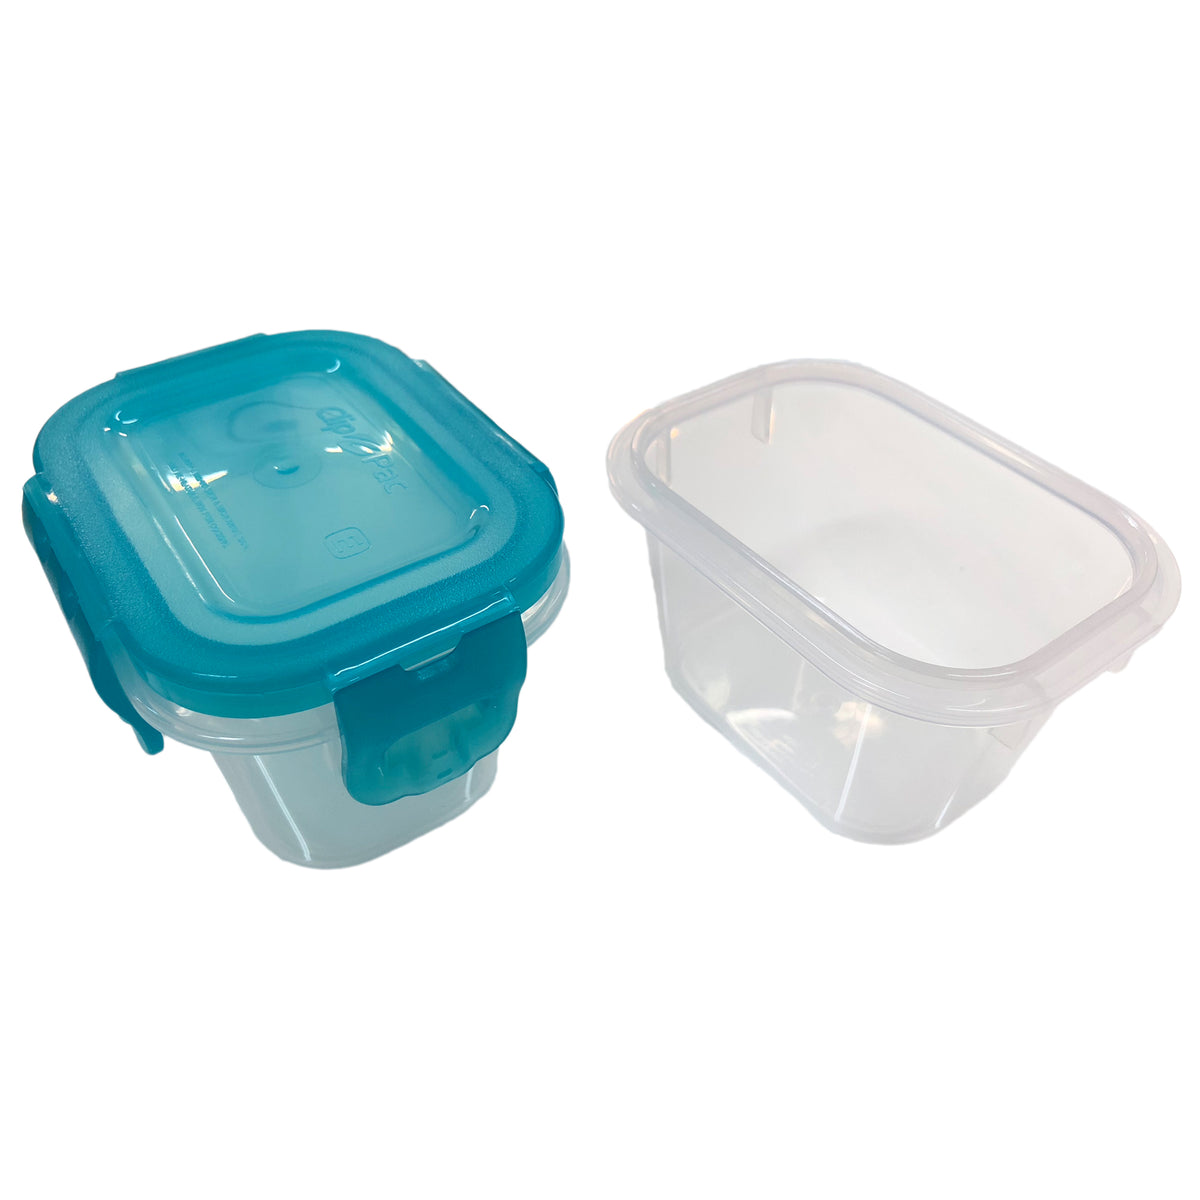 Nanny Baby Food Container Set with Spoon